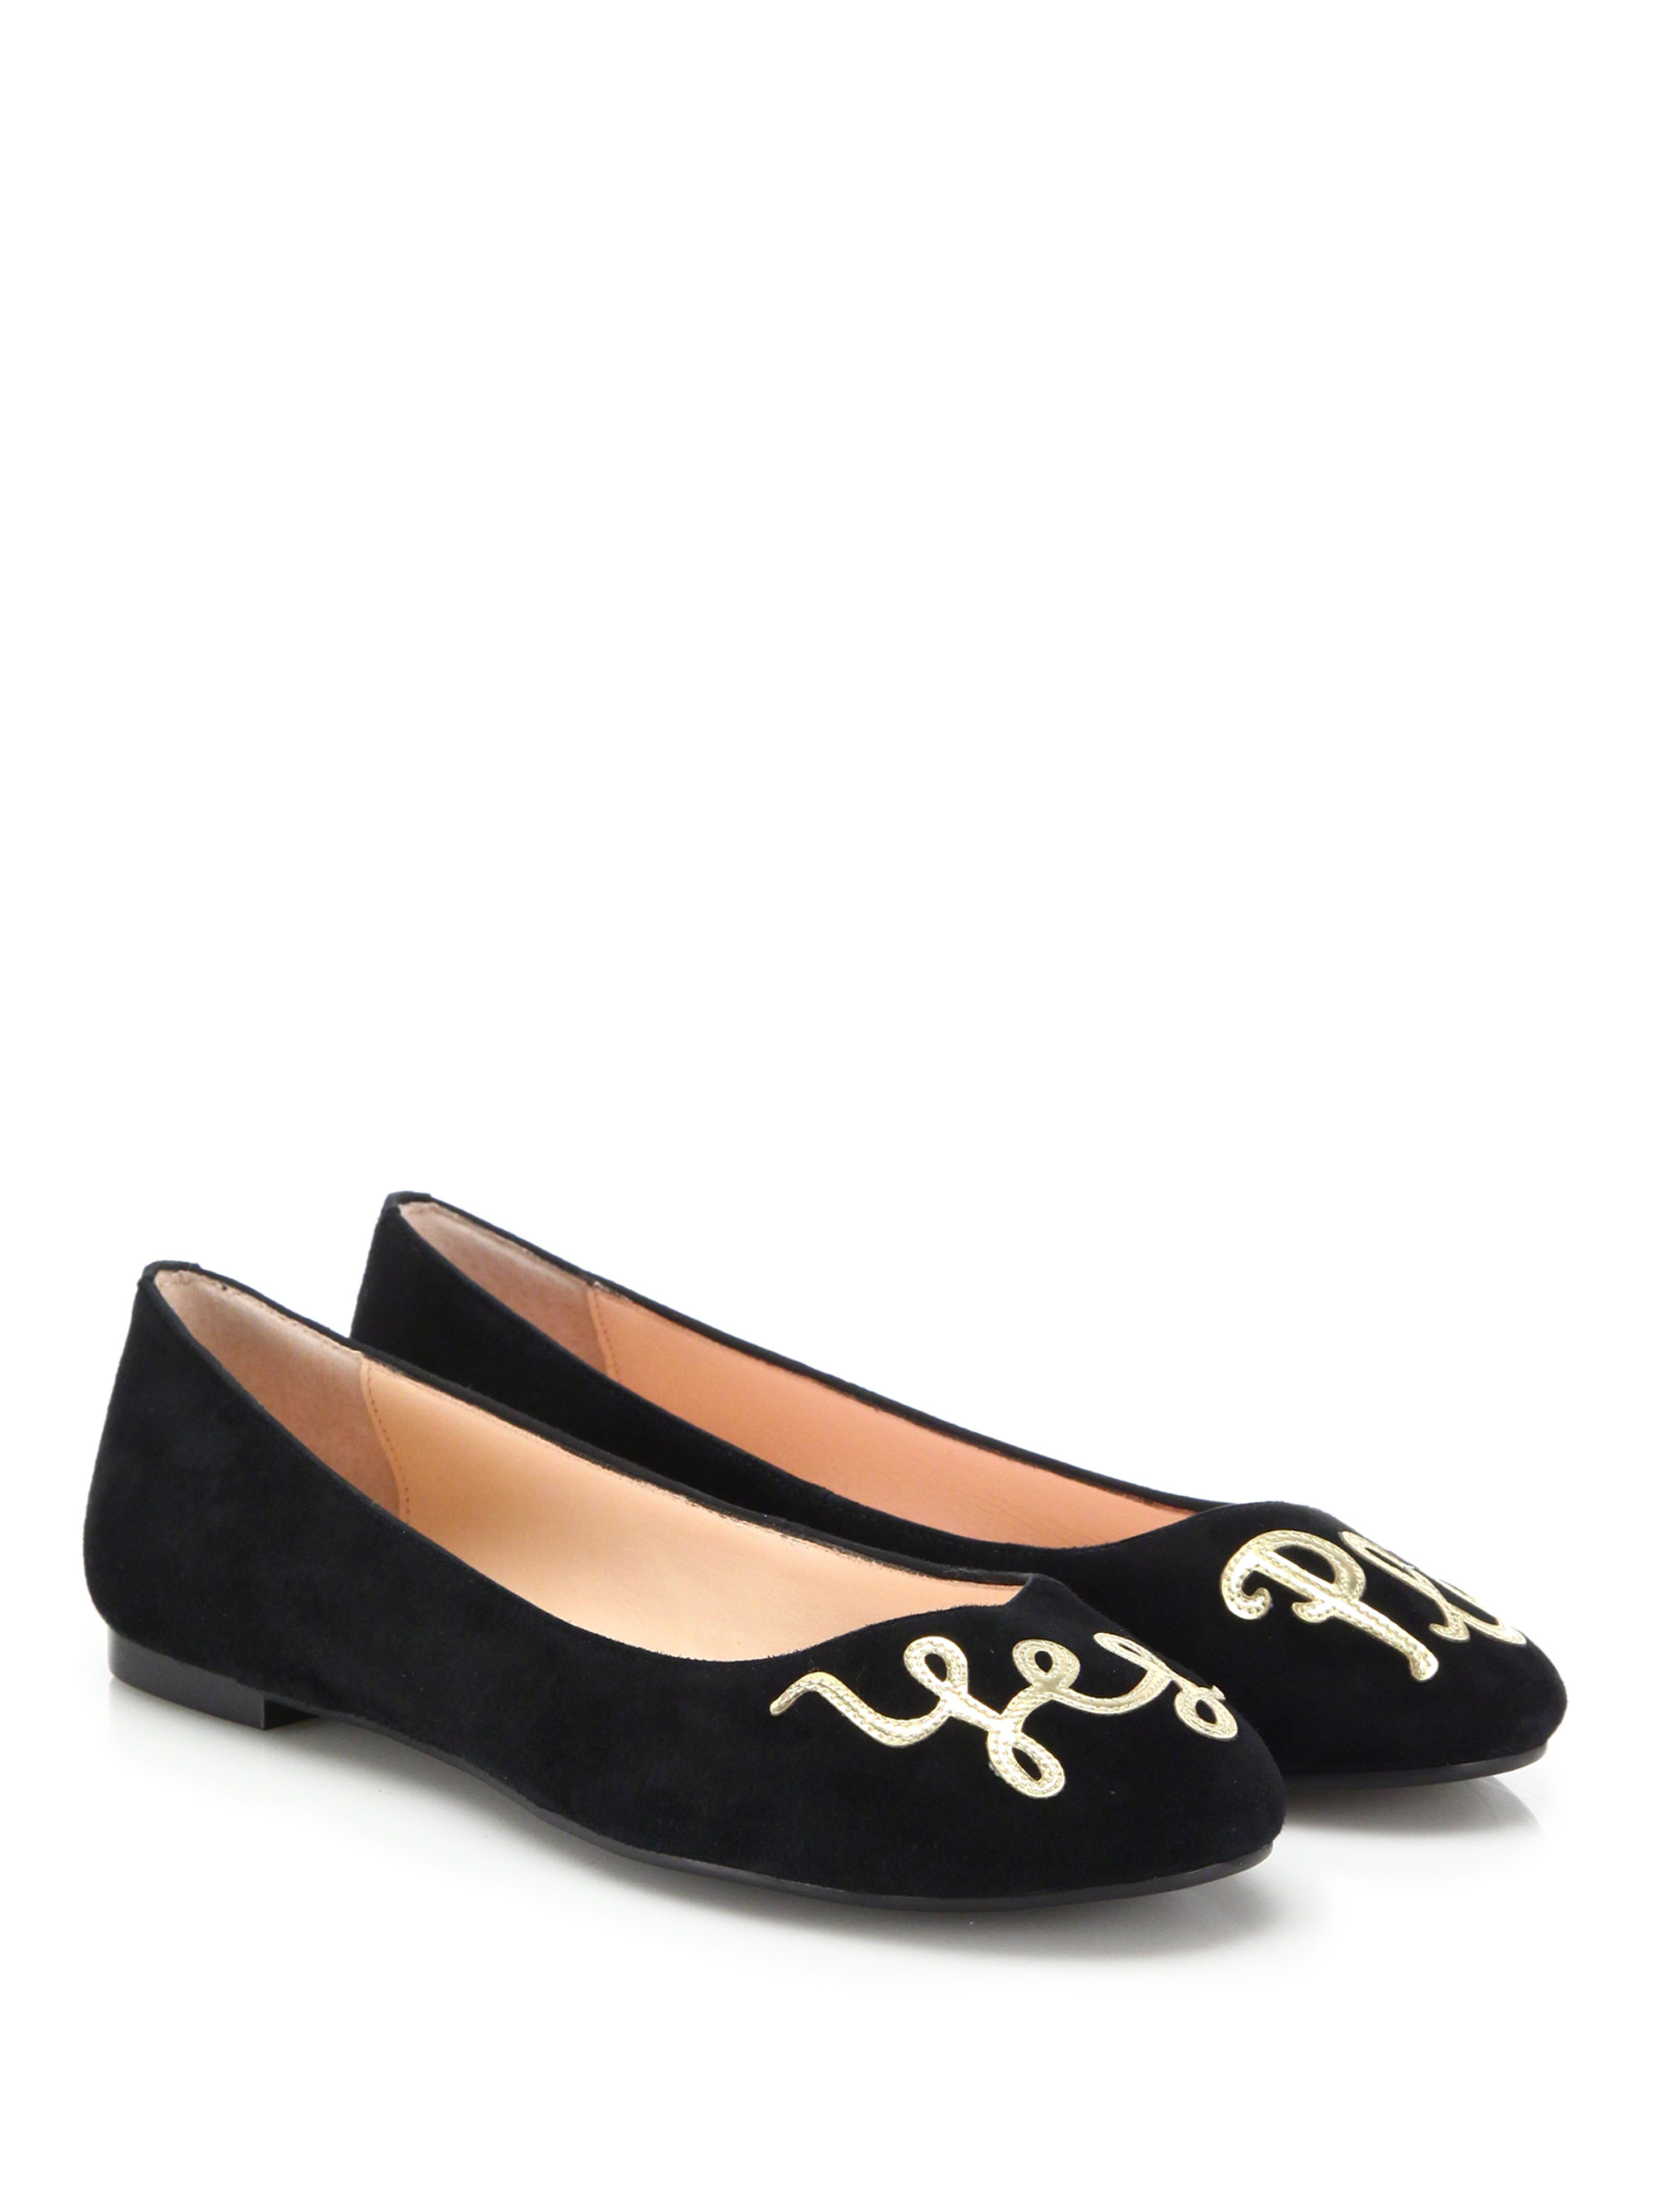 Lyst kate spade new york embroidered suede flats in black for Kate spade new york flats